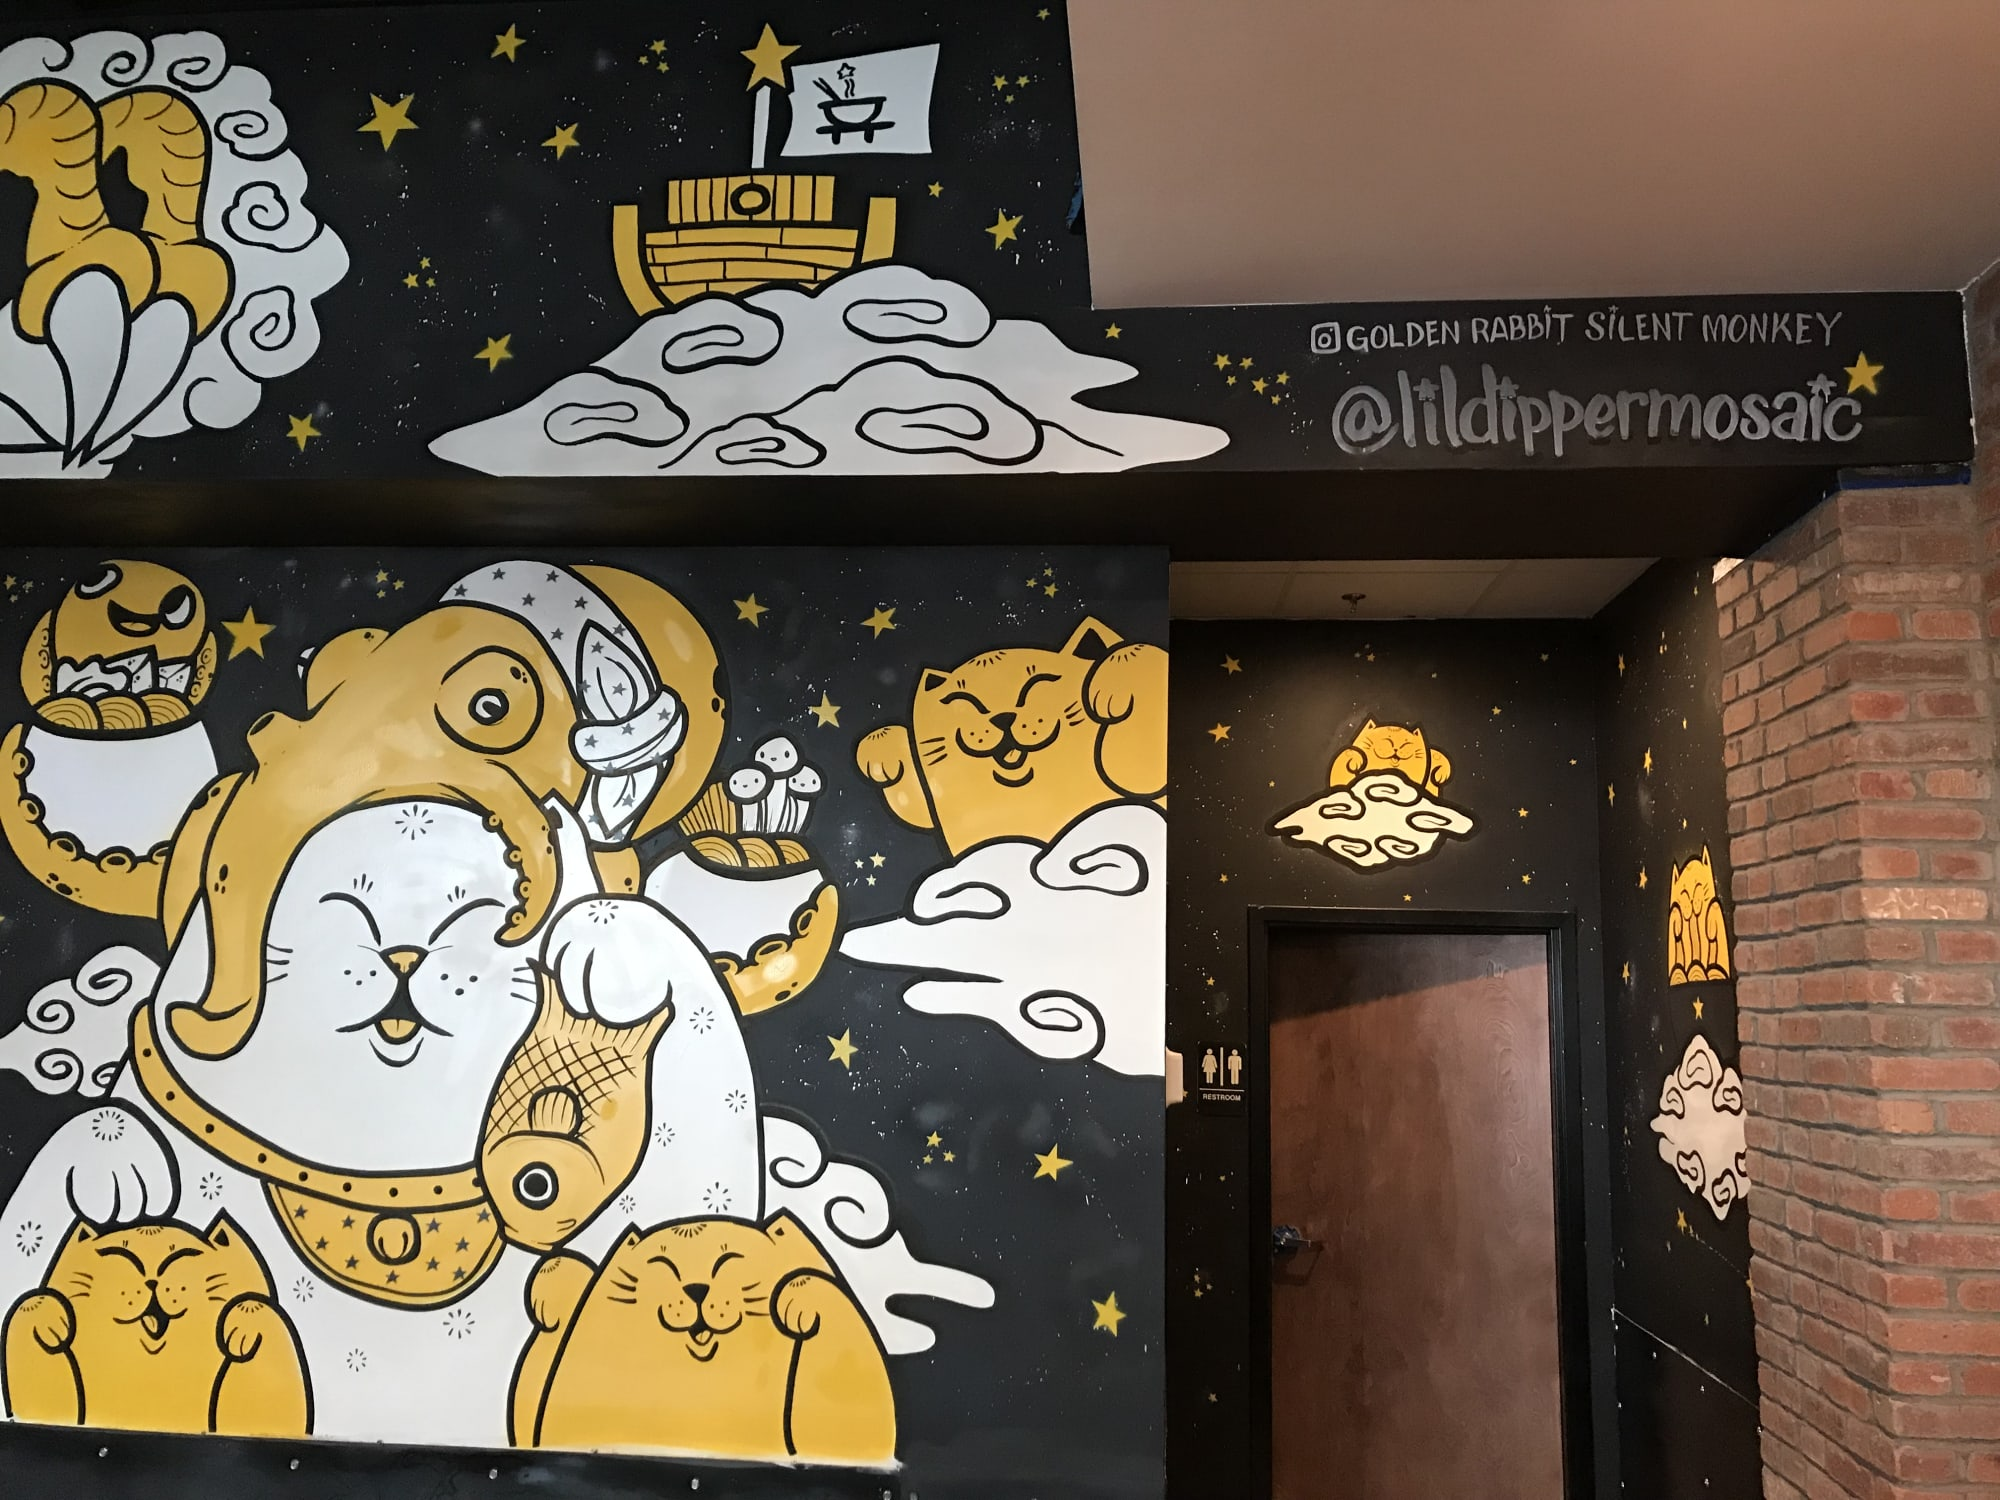 Murals by Golden Rabbit Silent Monkey at Little Dipper Hot Pot House, Fairfax - Food Offering for the Heavenly Dragon